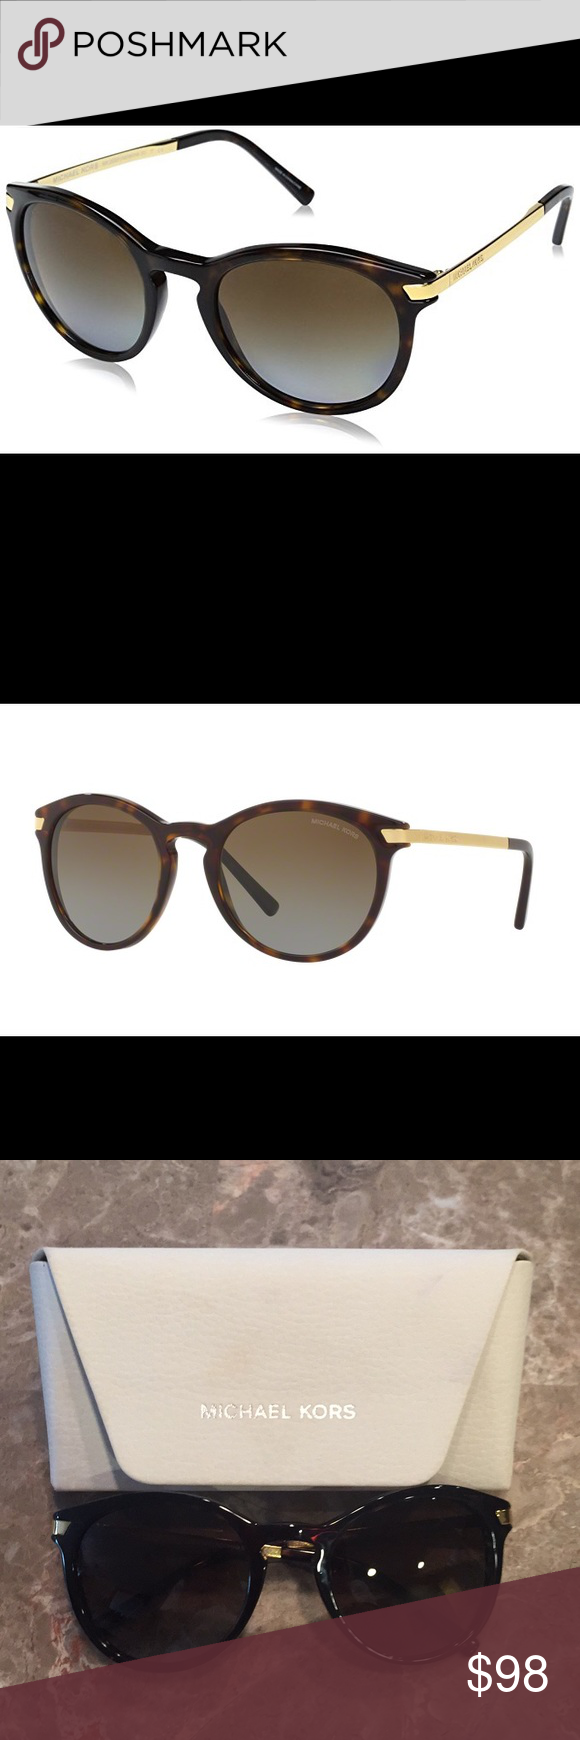 30d7088492 Michael Kors MK 2023 Adrianna III Sunglasses🌟 Reflect your style with the trendy  Adrianna Iii